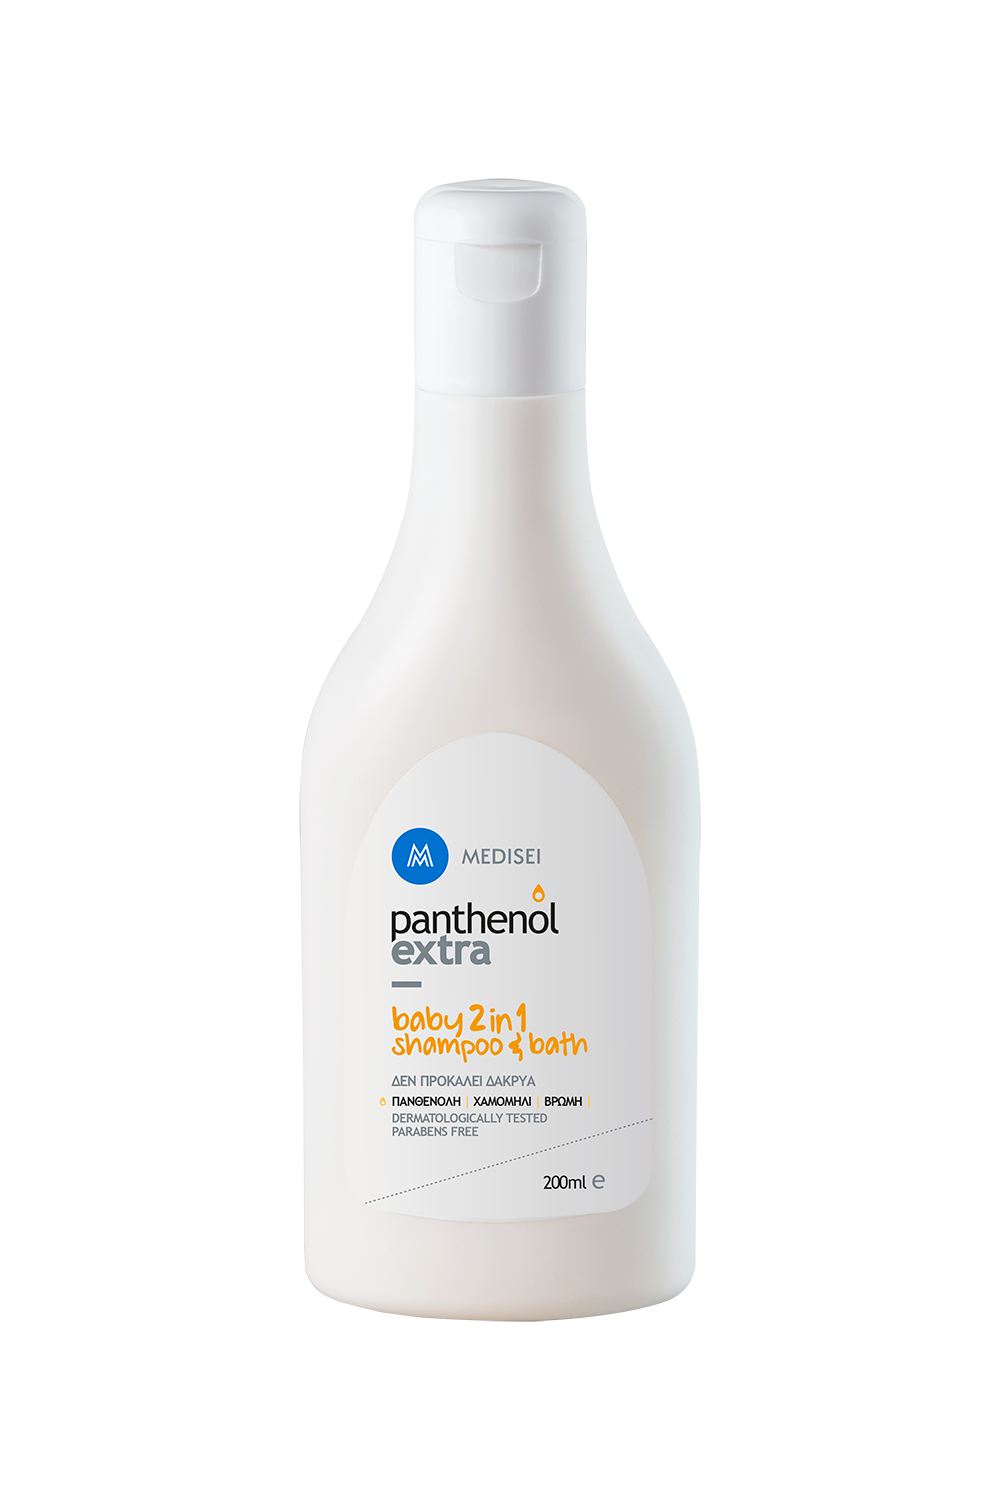 Panthenol Extra Baby Shampoo and Bath 2 in 1 18a865fd5ed